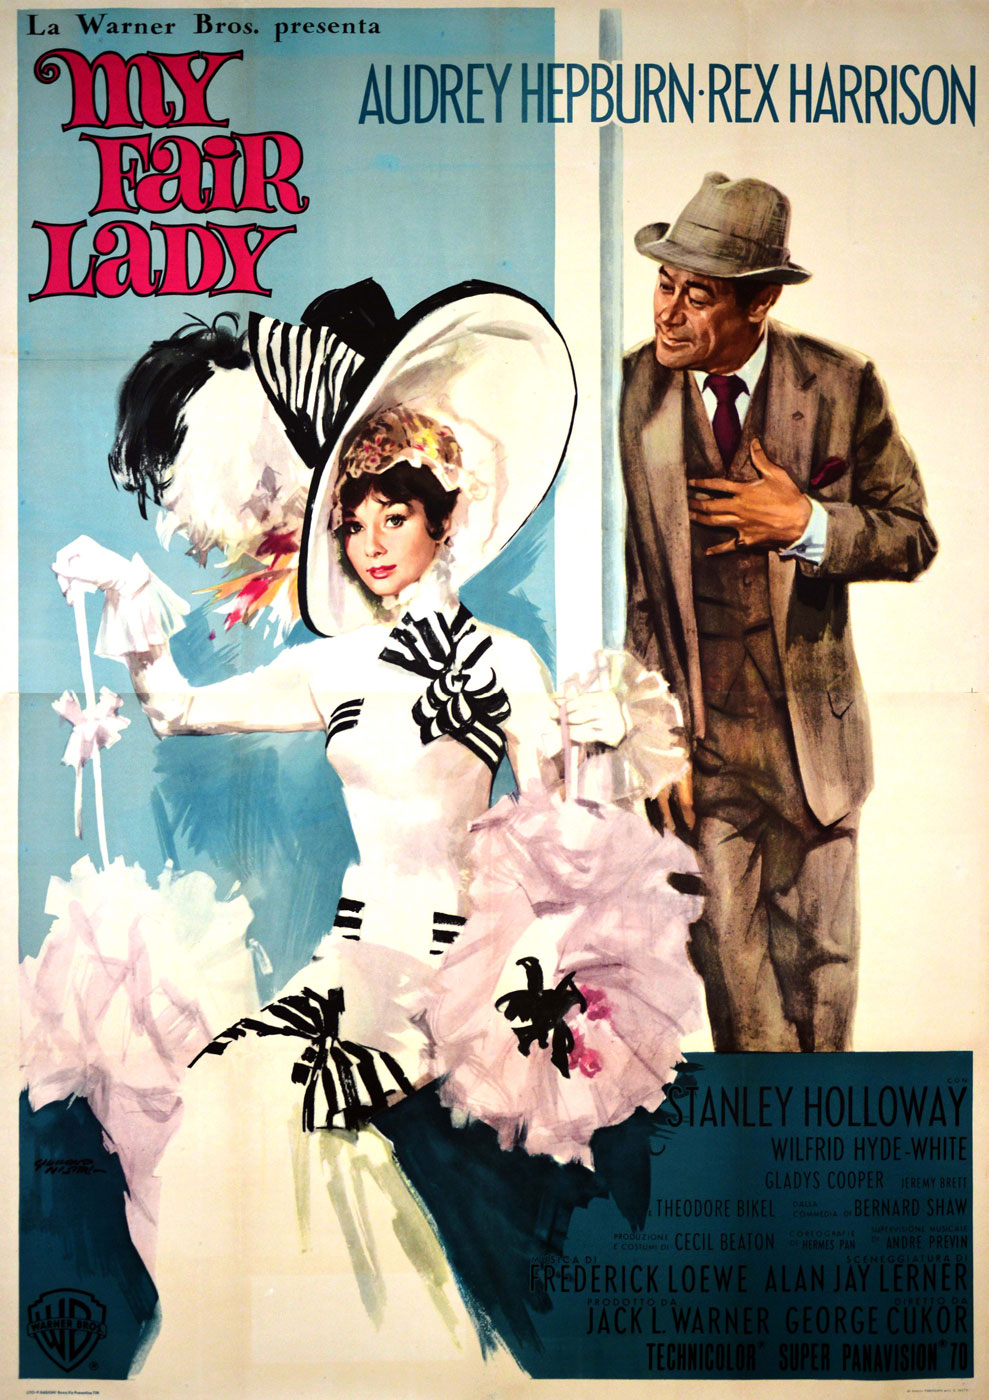 My Fair Lady par George Cukor